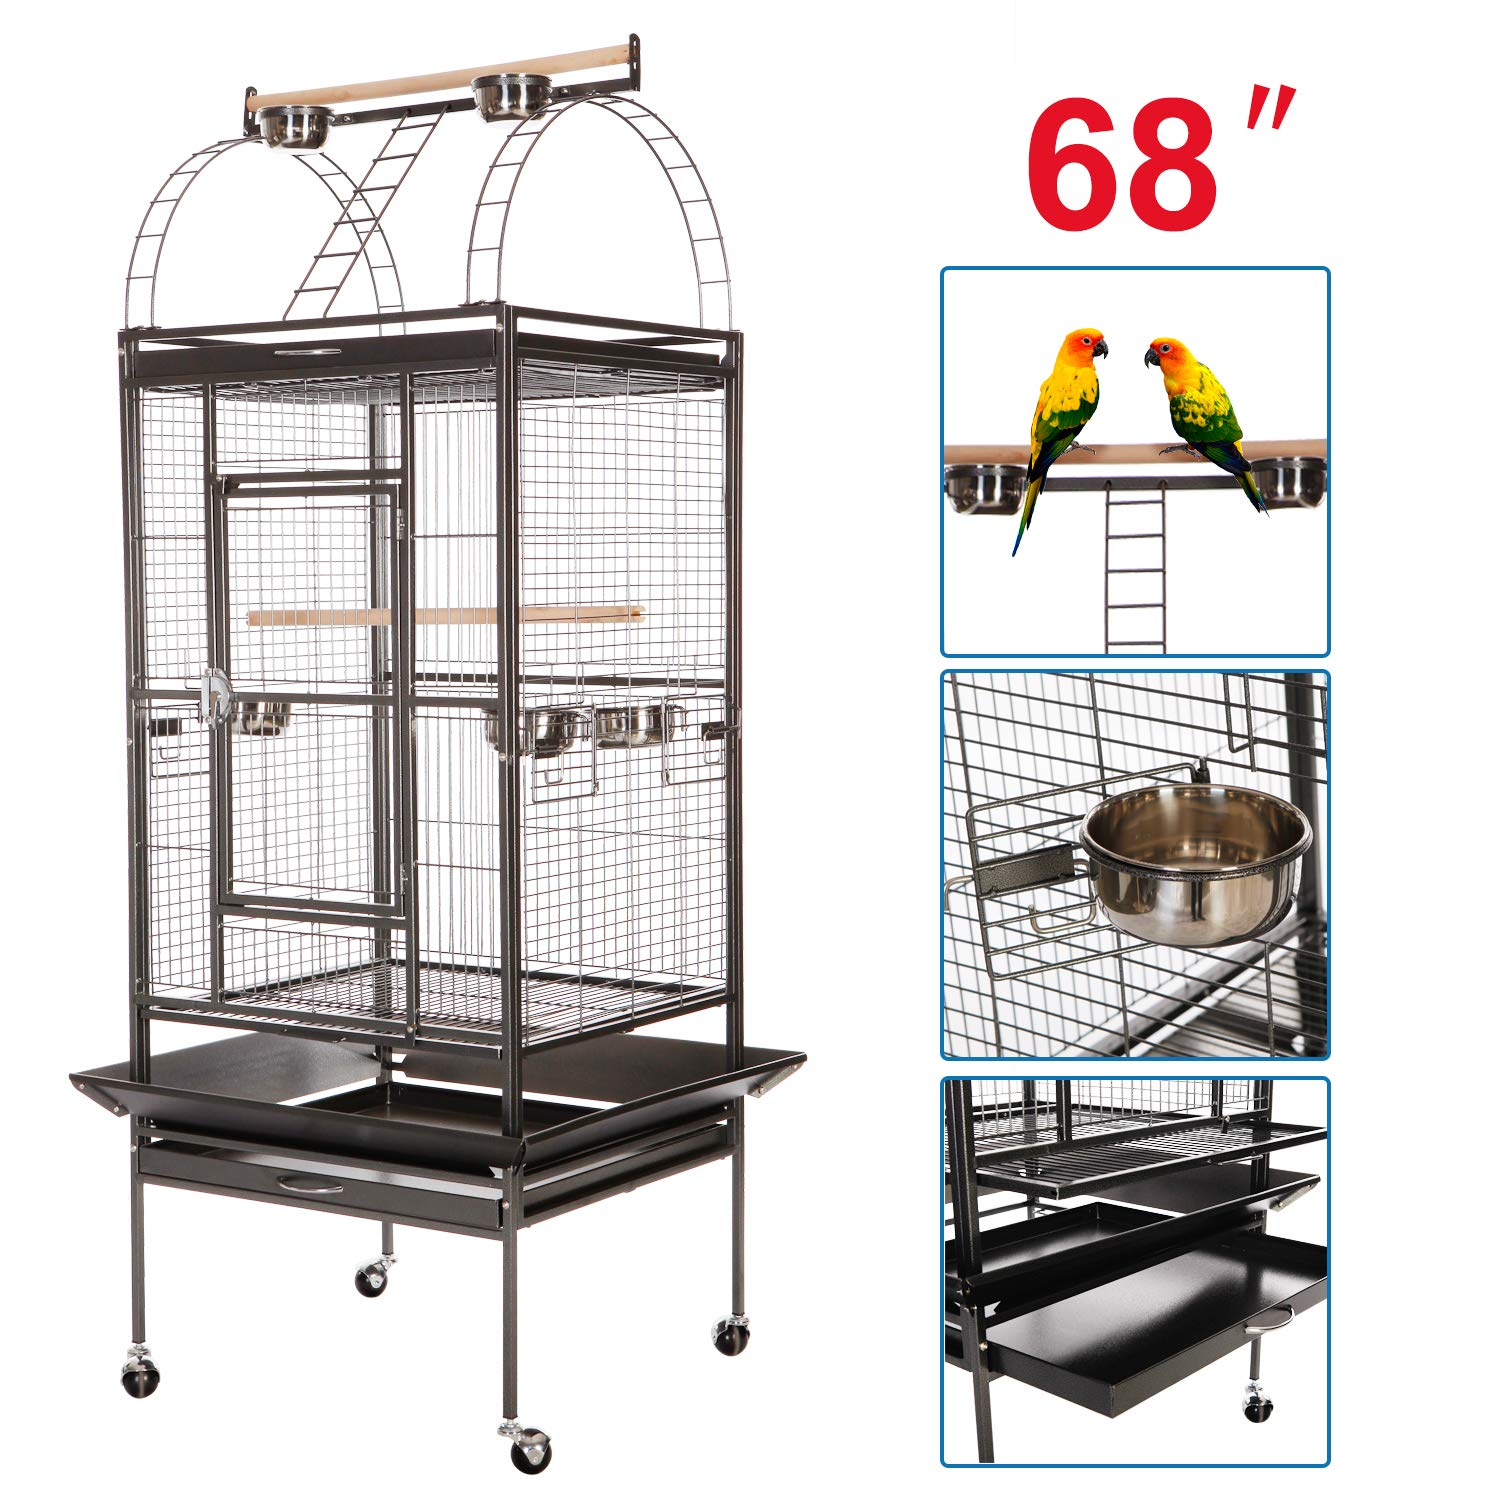 VECELA Bird Cage Play Top Parrot Cage 68 Inch Large Bird Cage with Unique Circular Staircase Birdcage for Parrot Large Pet House Black by VECELA